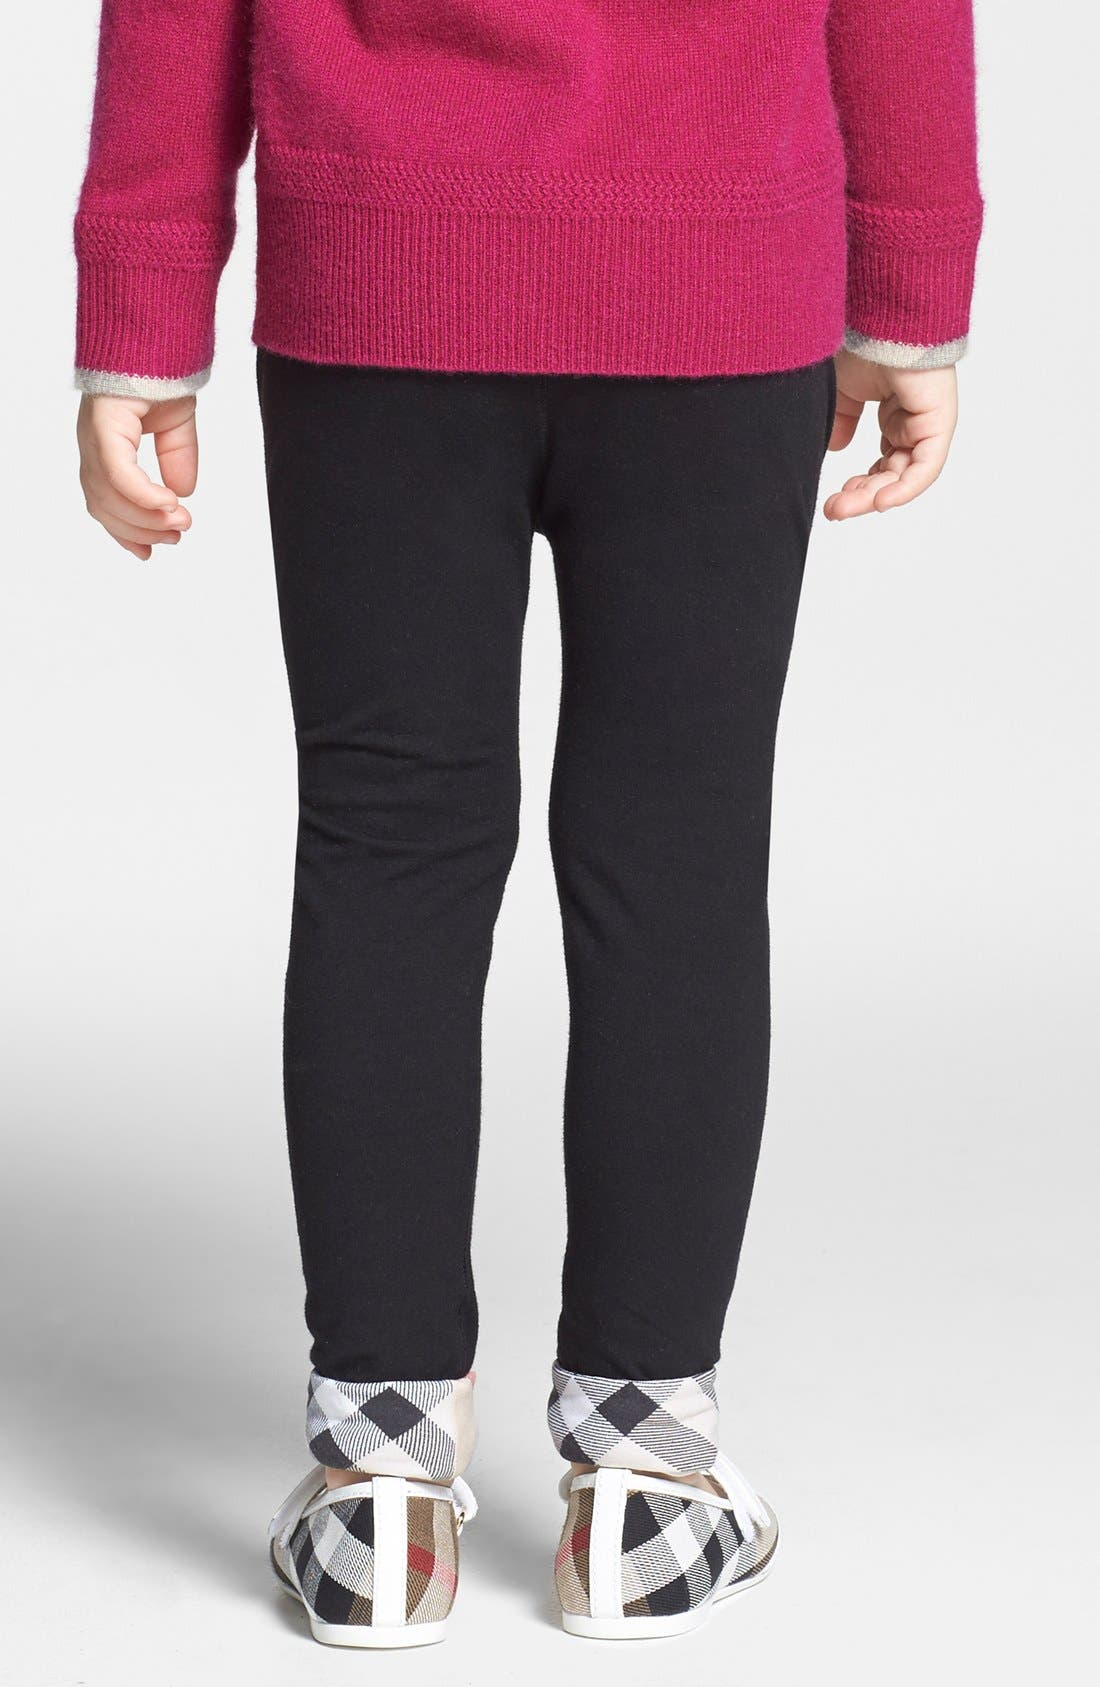 BURBERRY,                             Check Cuff Pants,                             Alternate thumbnail 4, color,                             001